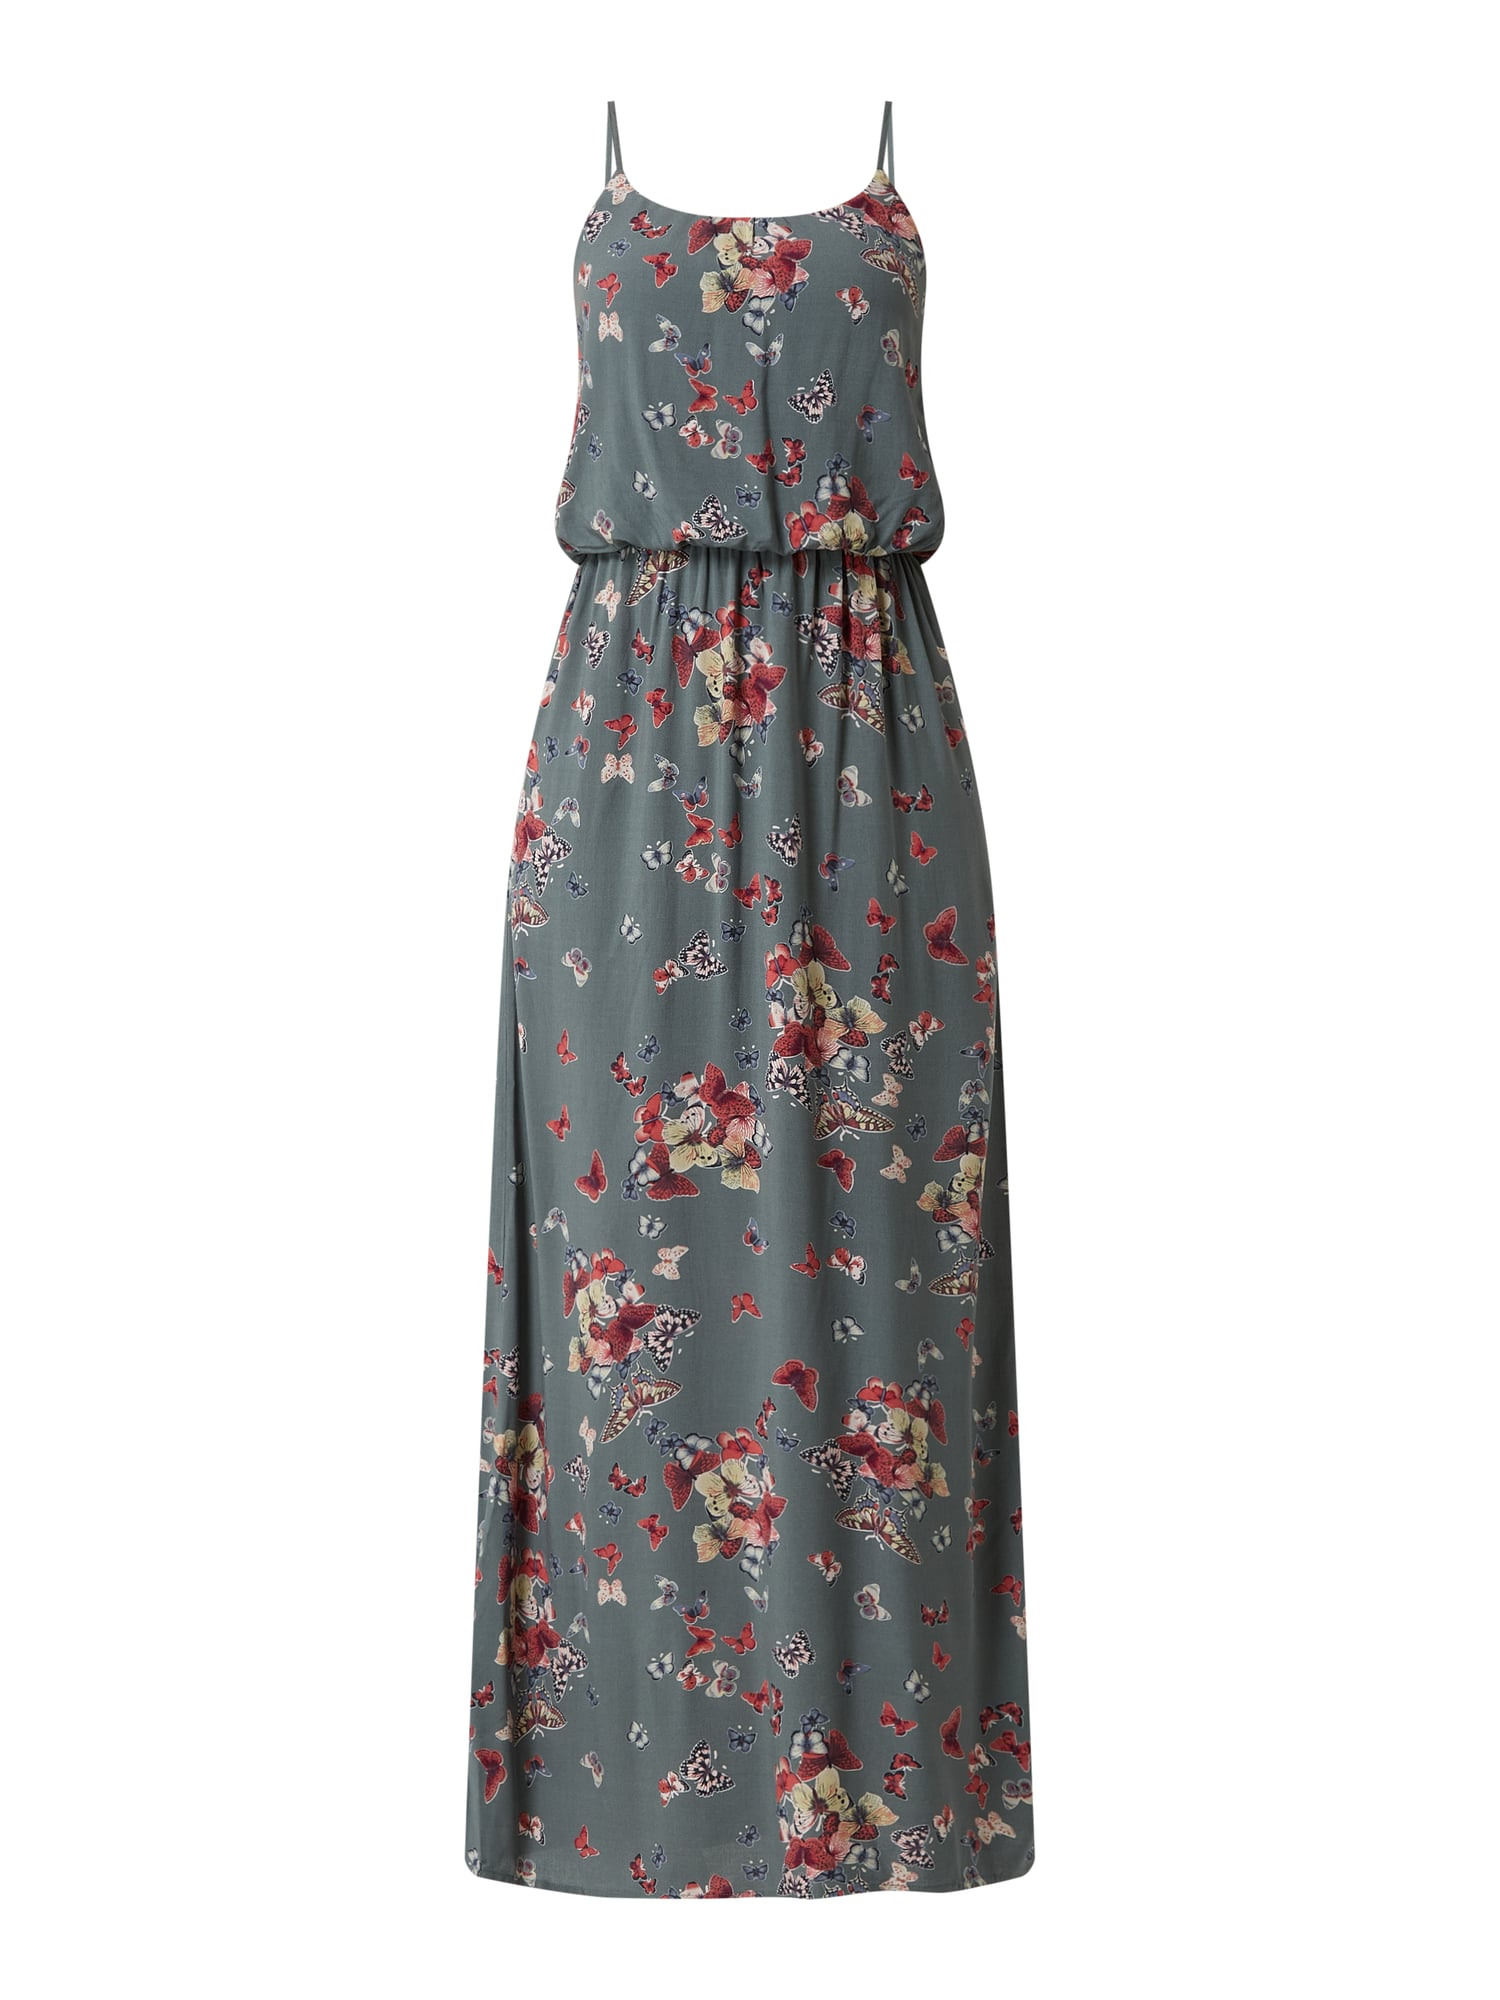 Only Maxikleid Mit Allovermuster Modell 'Butterfly' In